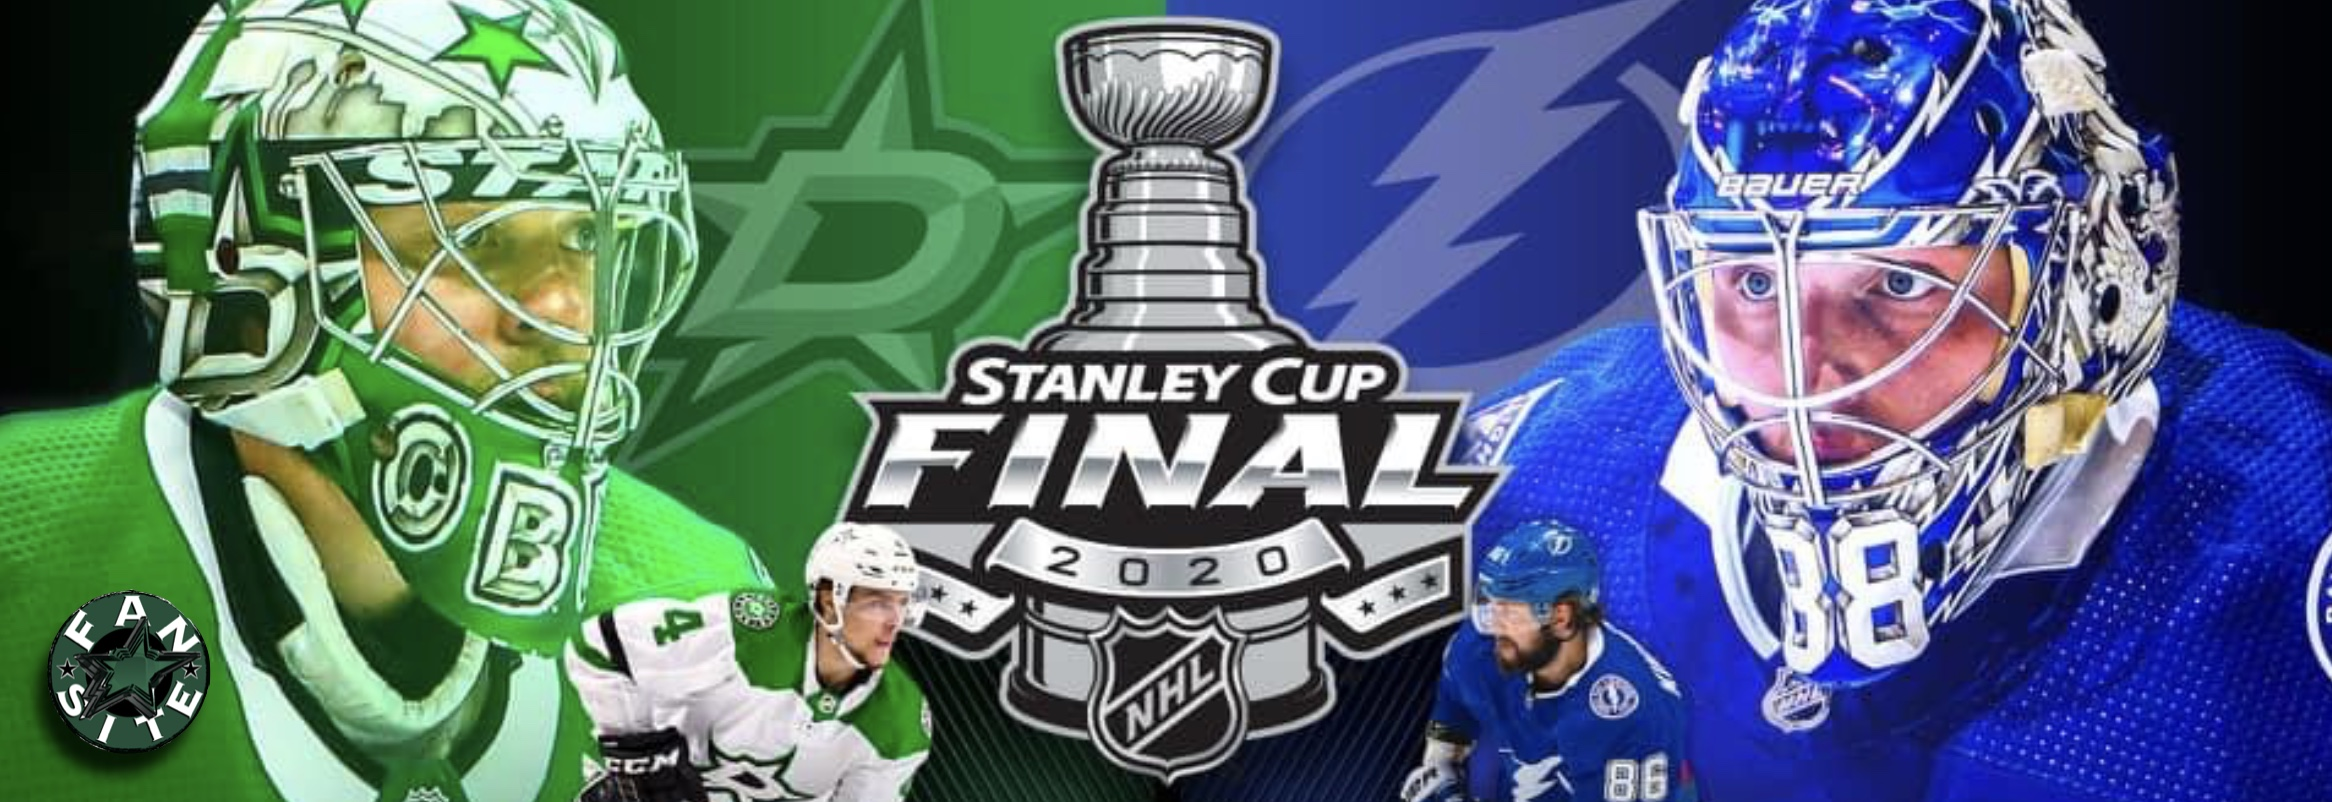 The Final is set! Stars vs Lightning